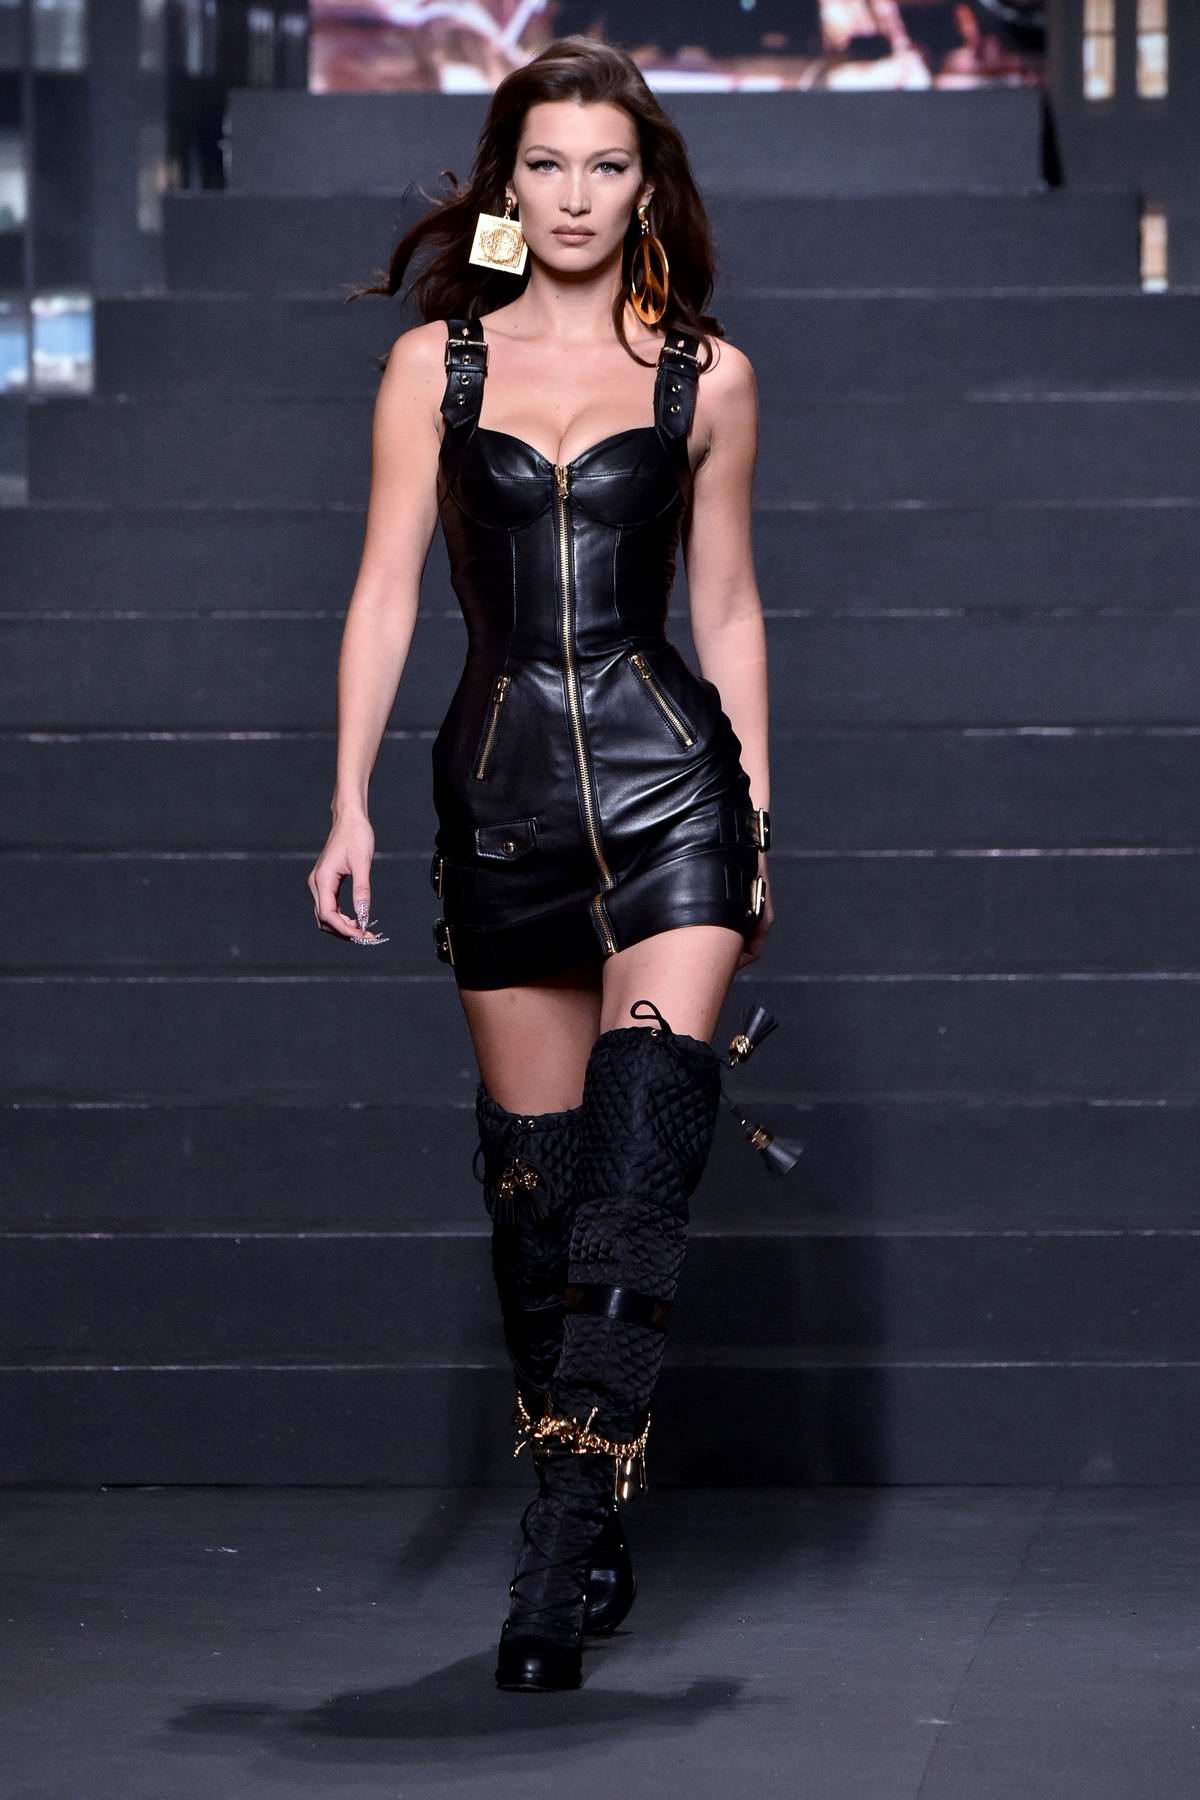 Bella Hadid walks the runway during Moschino x H&M Fashion Show in New York City